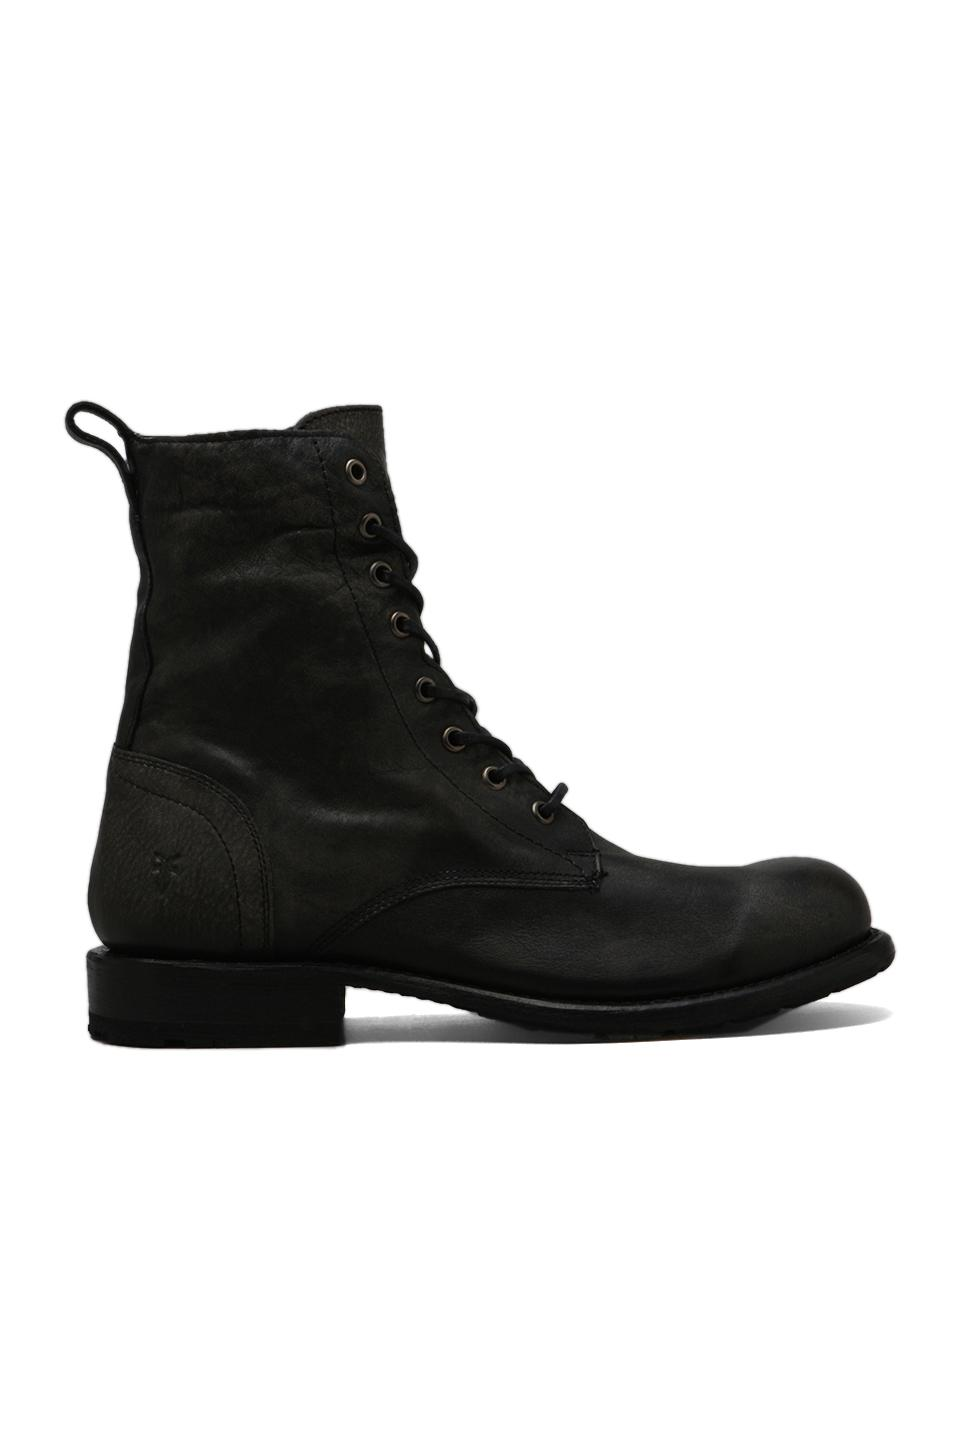 Frye Rogan Tall Lace Up Boot in Black